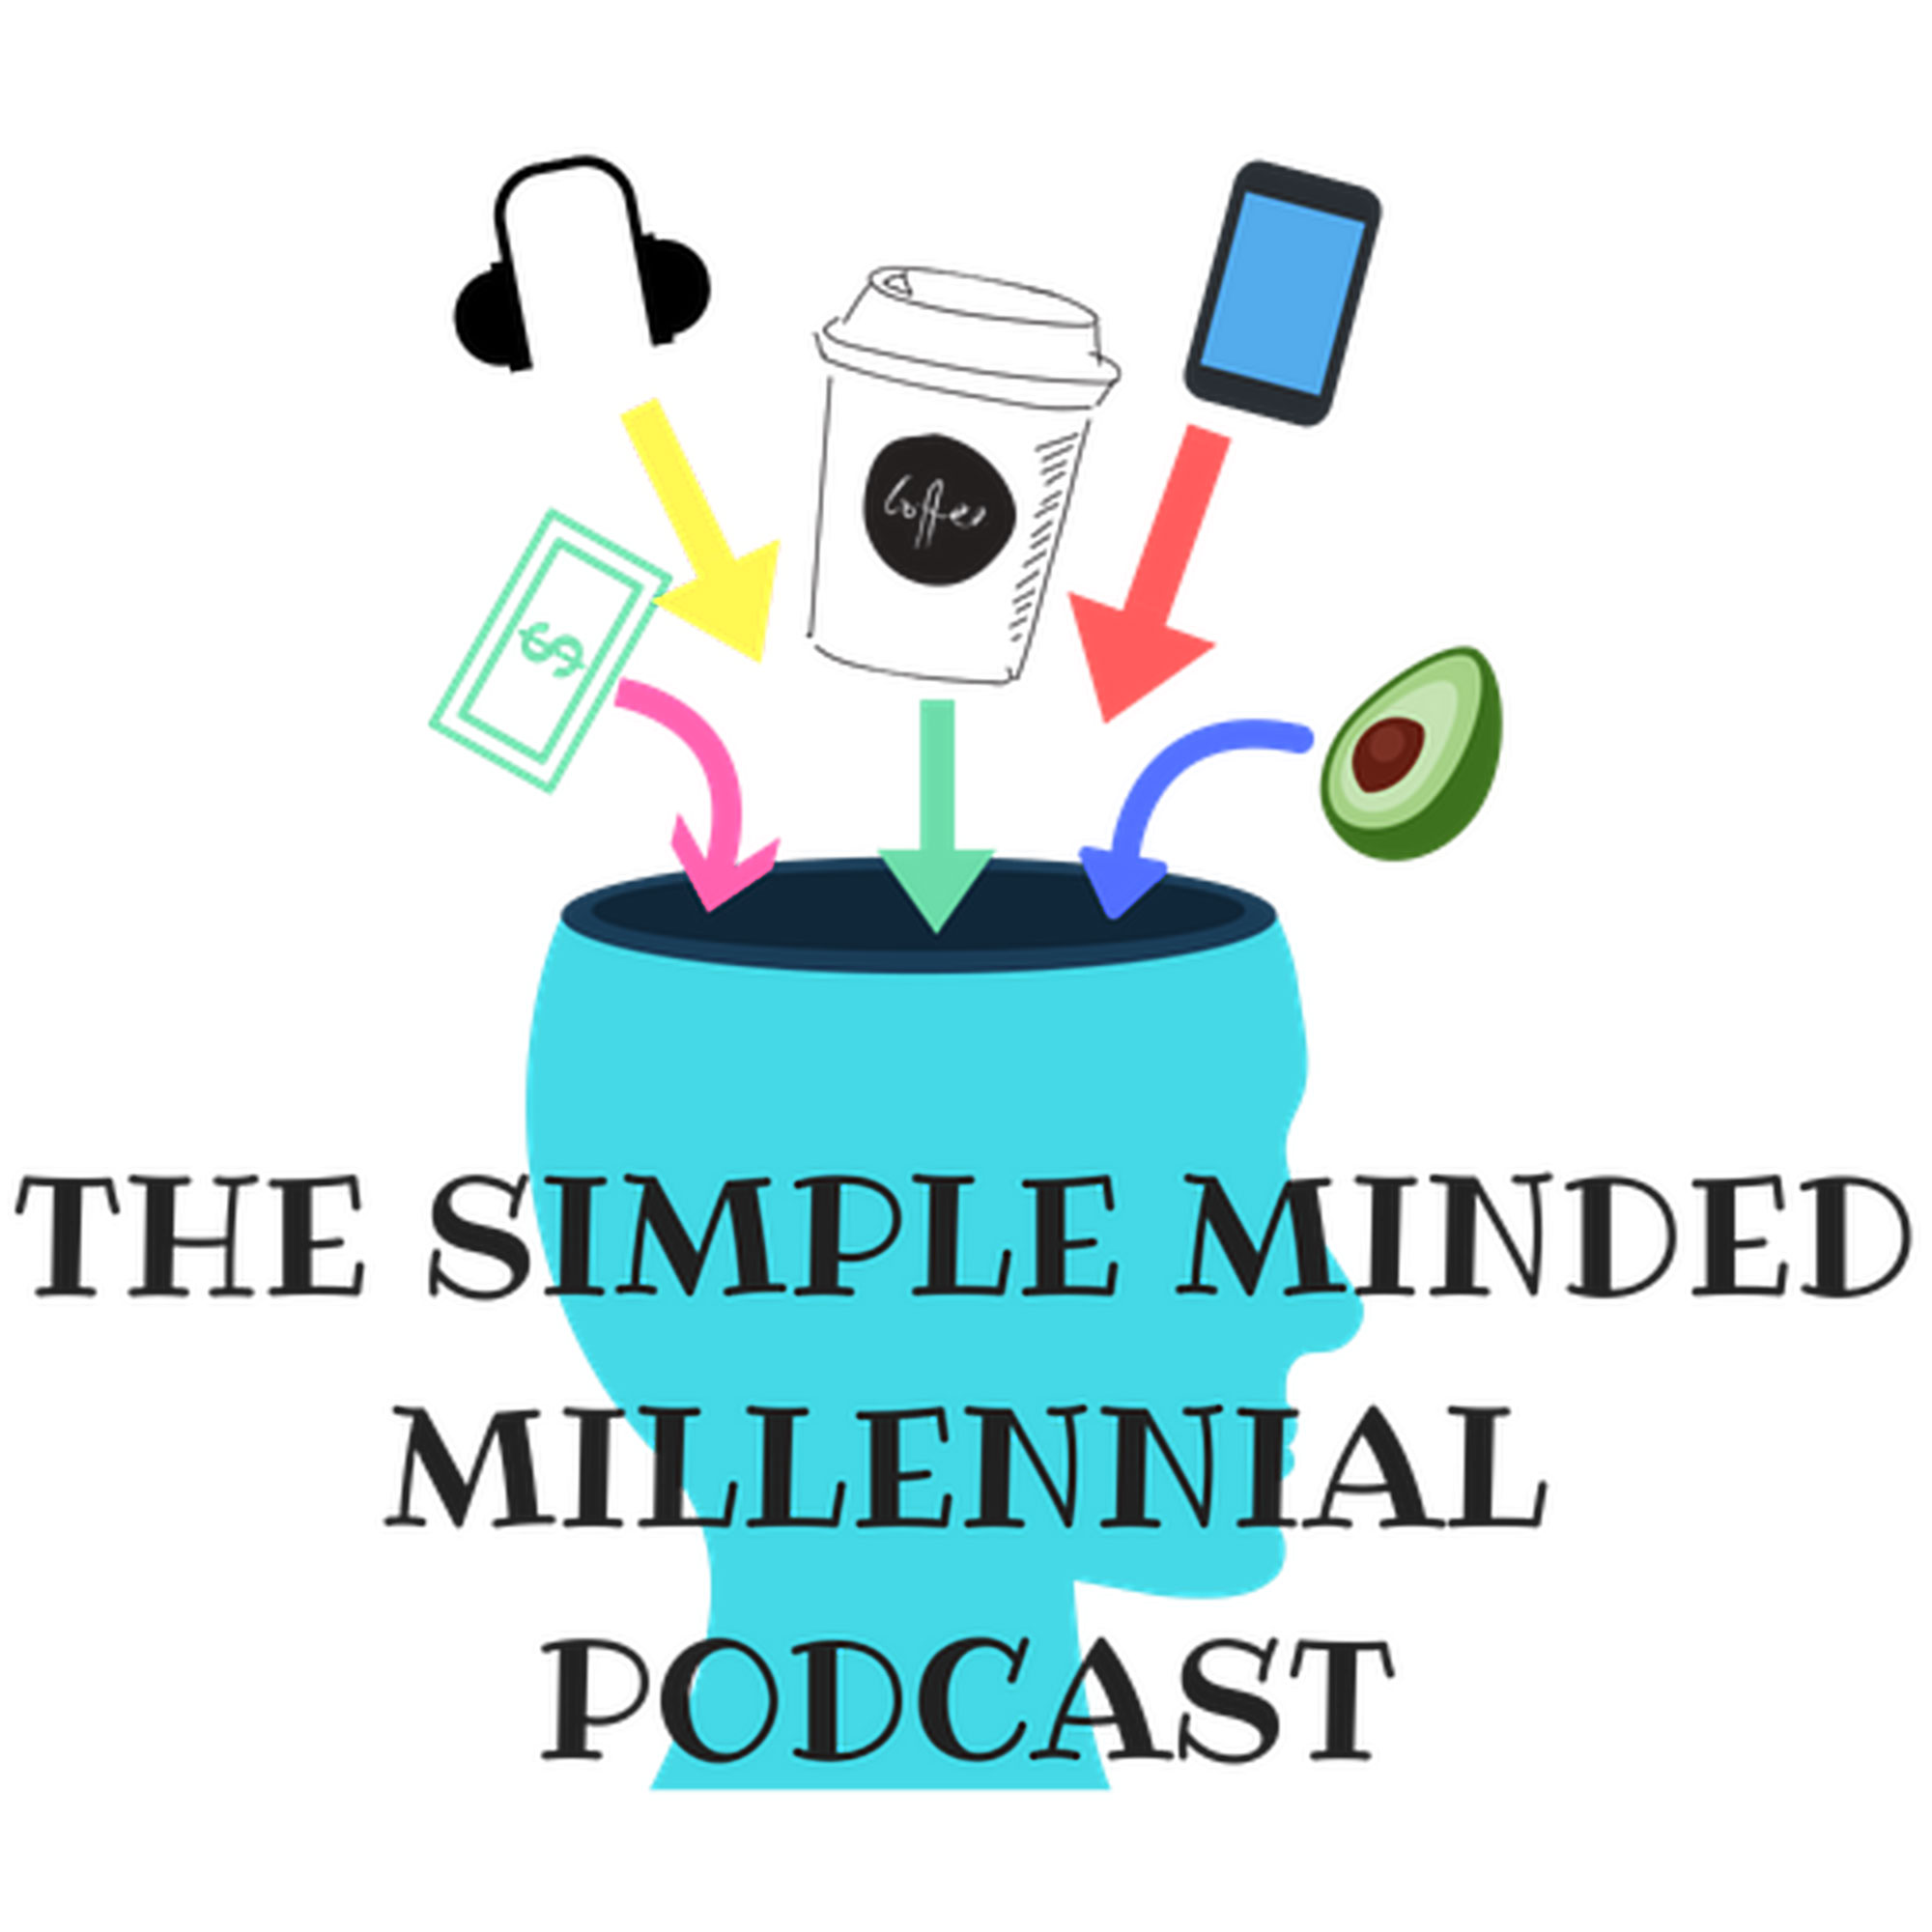 The Simple Minded Millennial Podcast